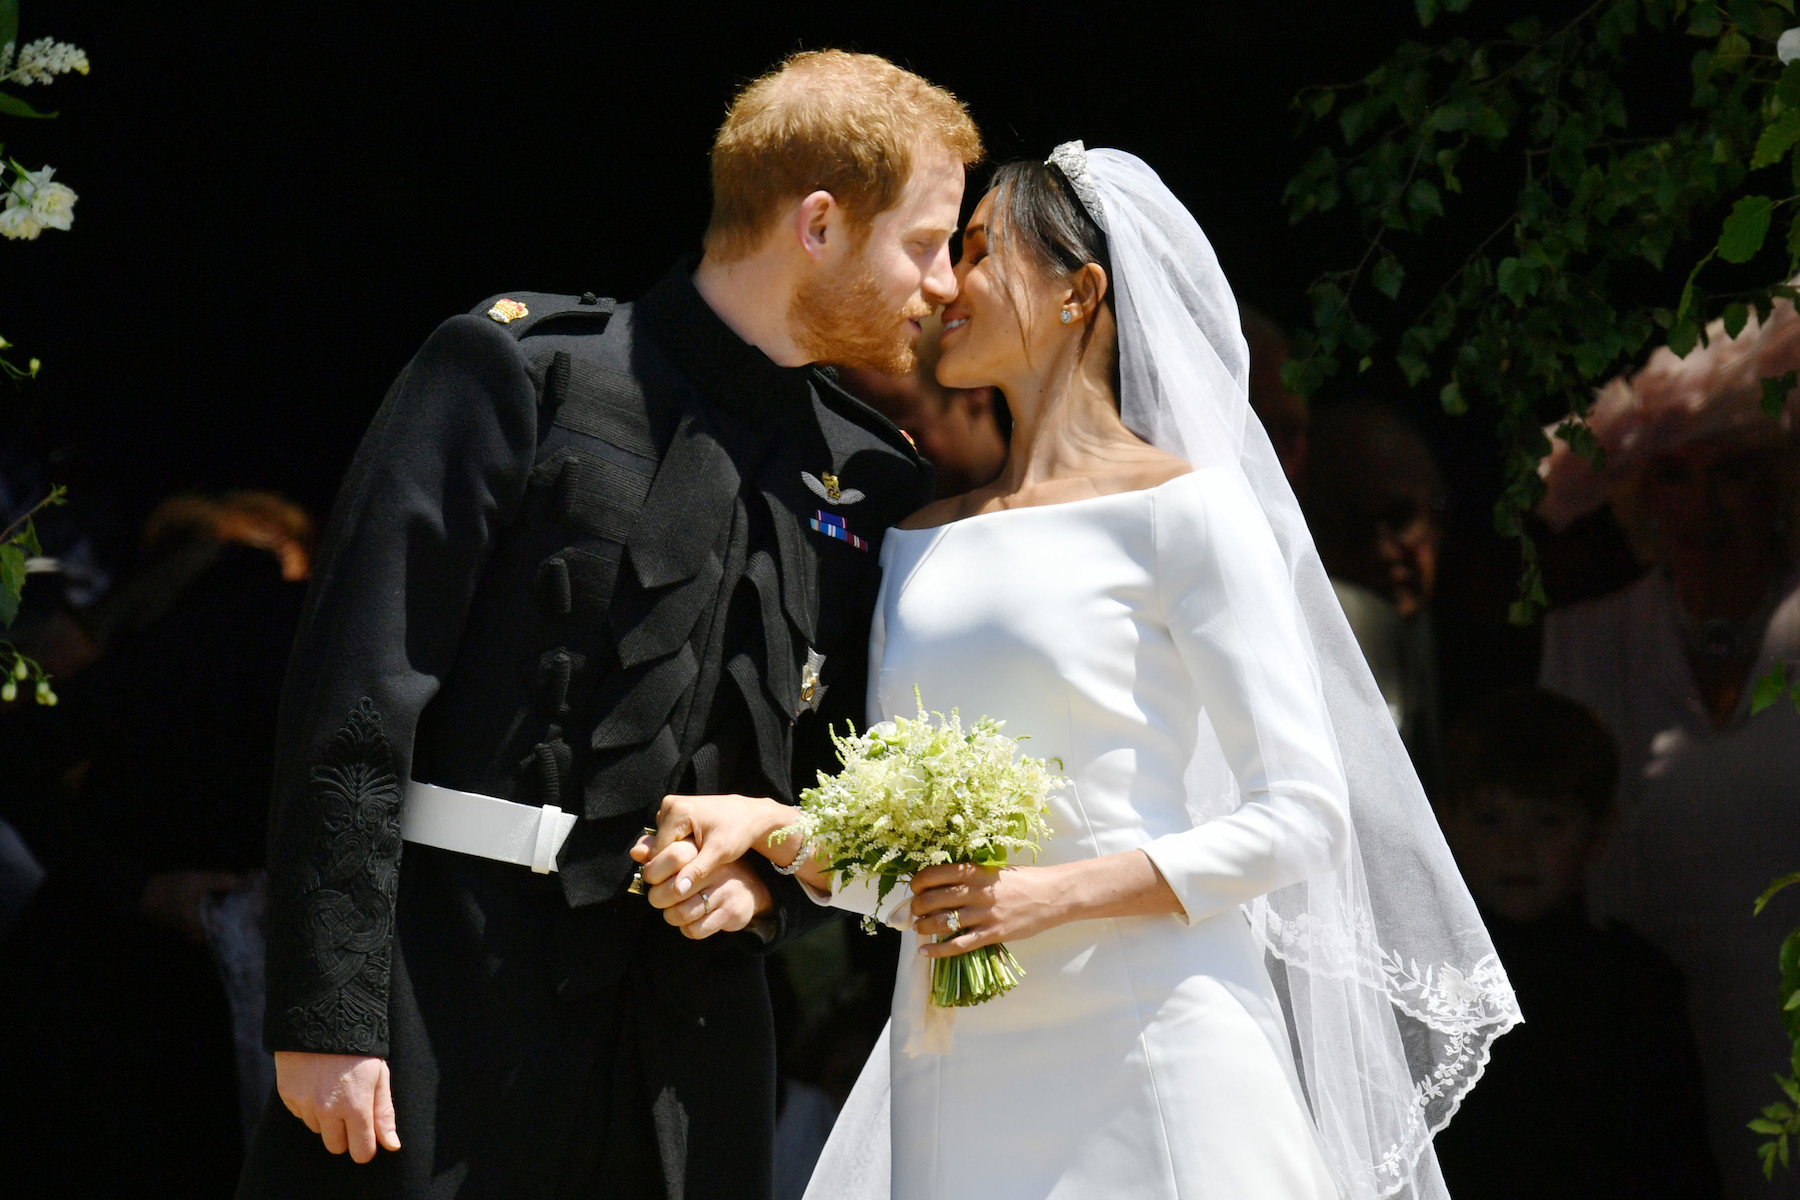 "<div class=""meta image-caption""><div class=""origin-logo origin-image kgo""><span>kgo</span></div><span class=""caption-text"">Britain's Prince Harry, Duke of Sussex kisses his wife Meghan, Duchess of Sussex as they leave from the West Door of St George's Chapel. (Ben Birchall/AFP/Getty Images)</span></div>"